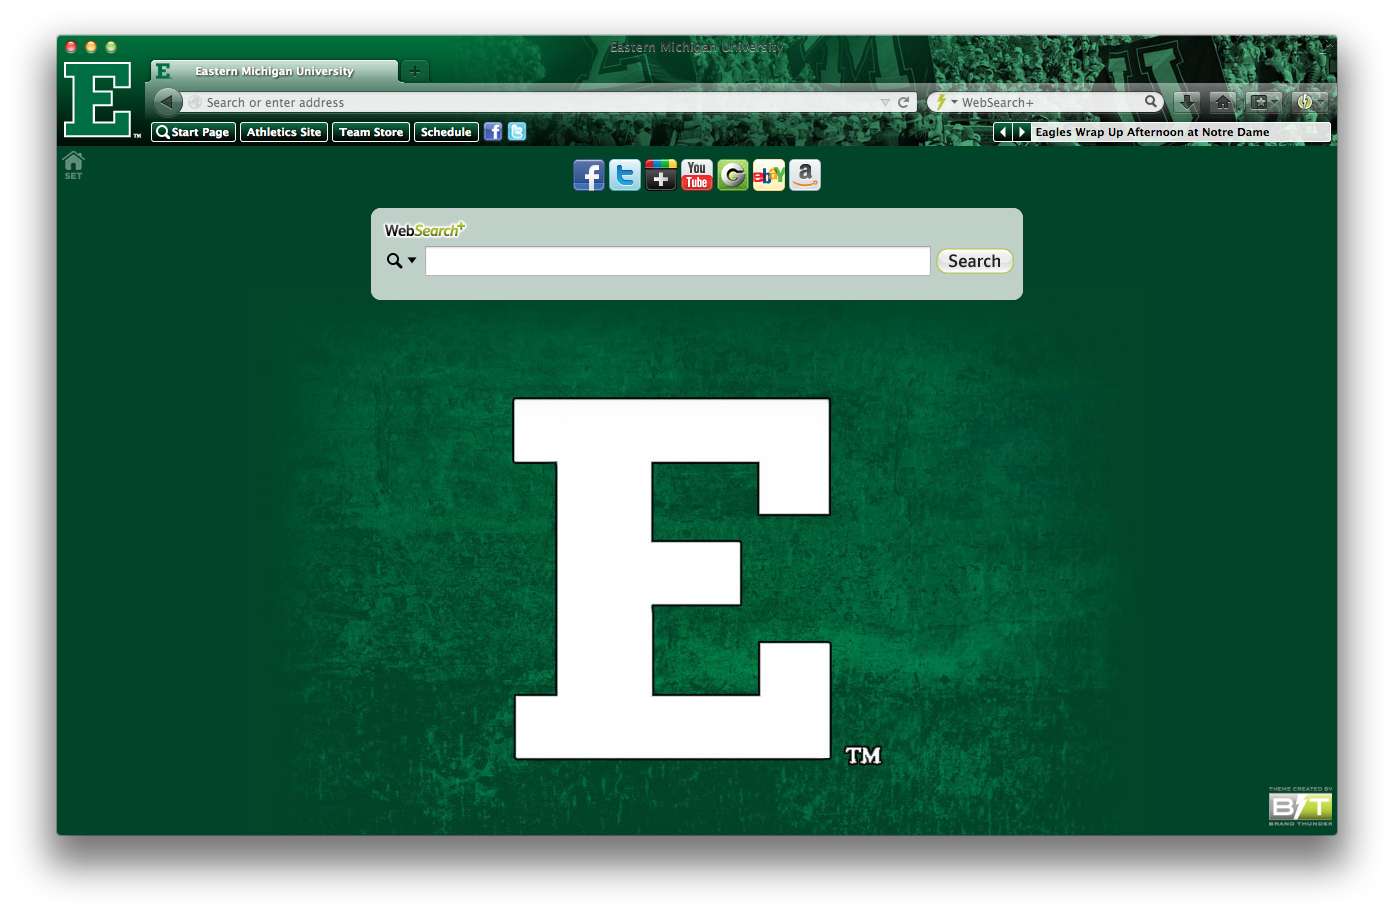 Eastern Michigan University welcome image